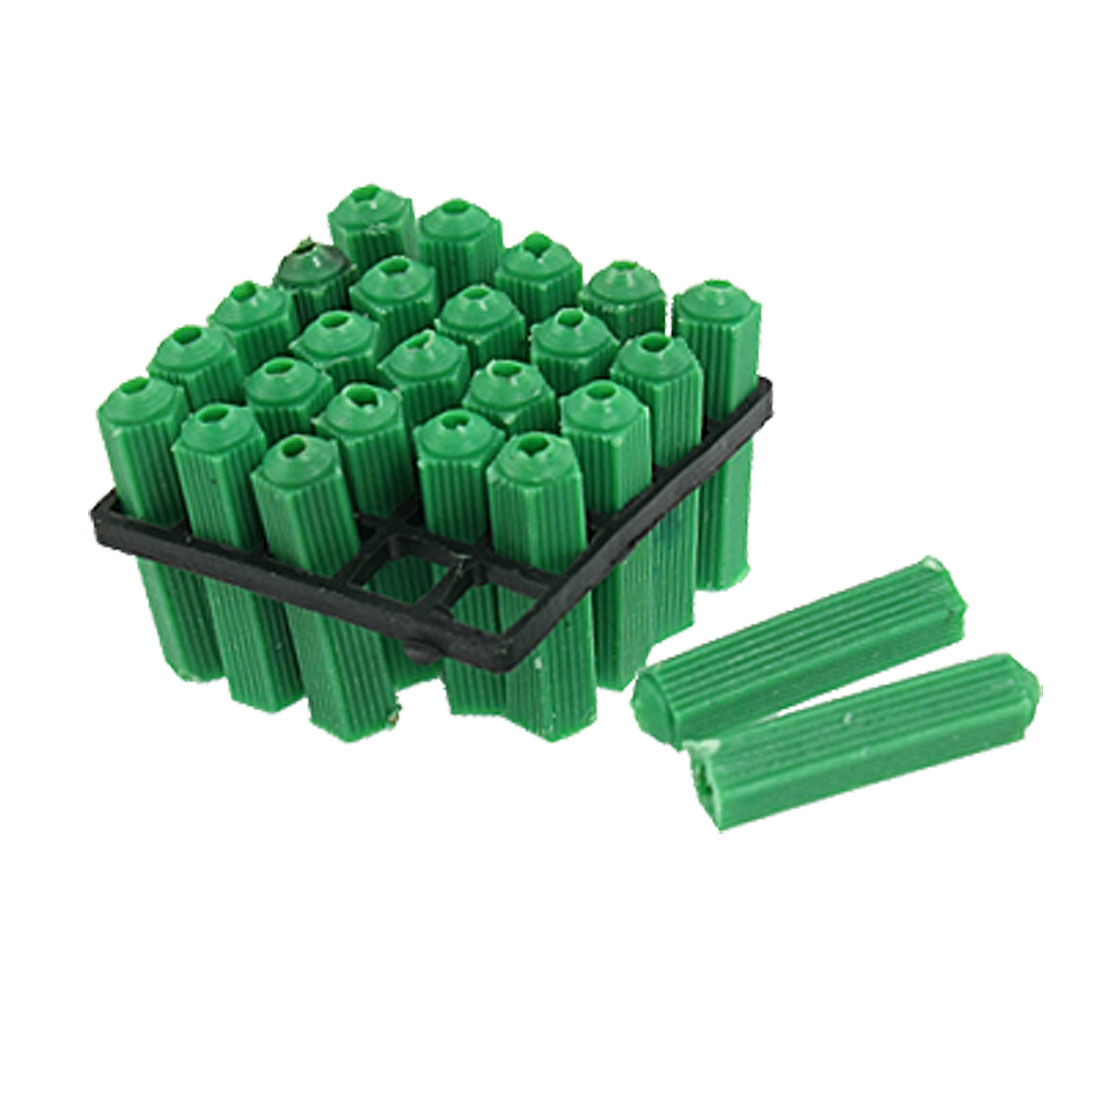 Masonry Fixing Green 8mm Nonslip Plastic Wall Plugs 125 Pcs